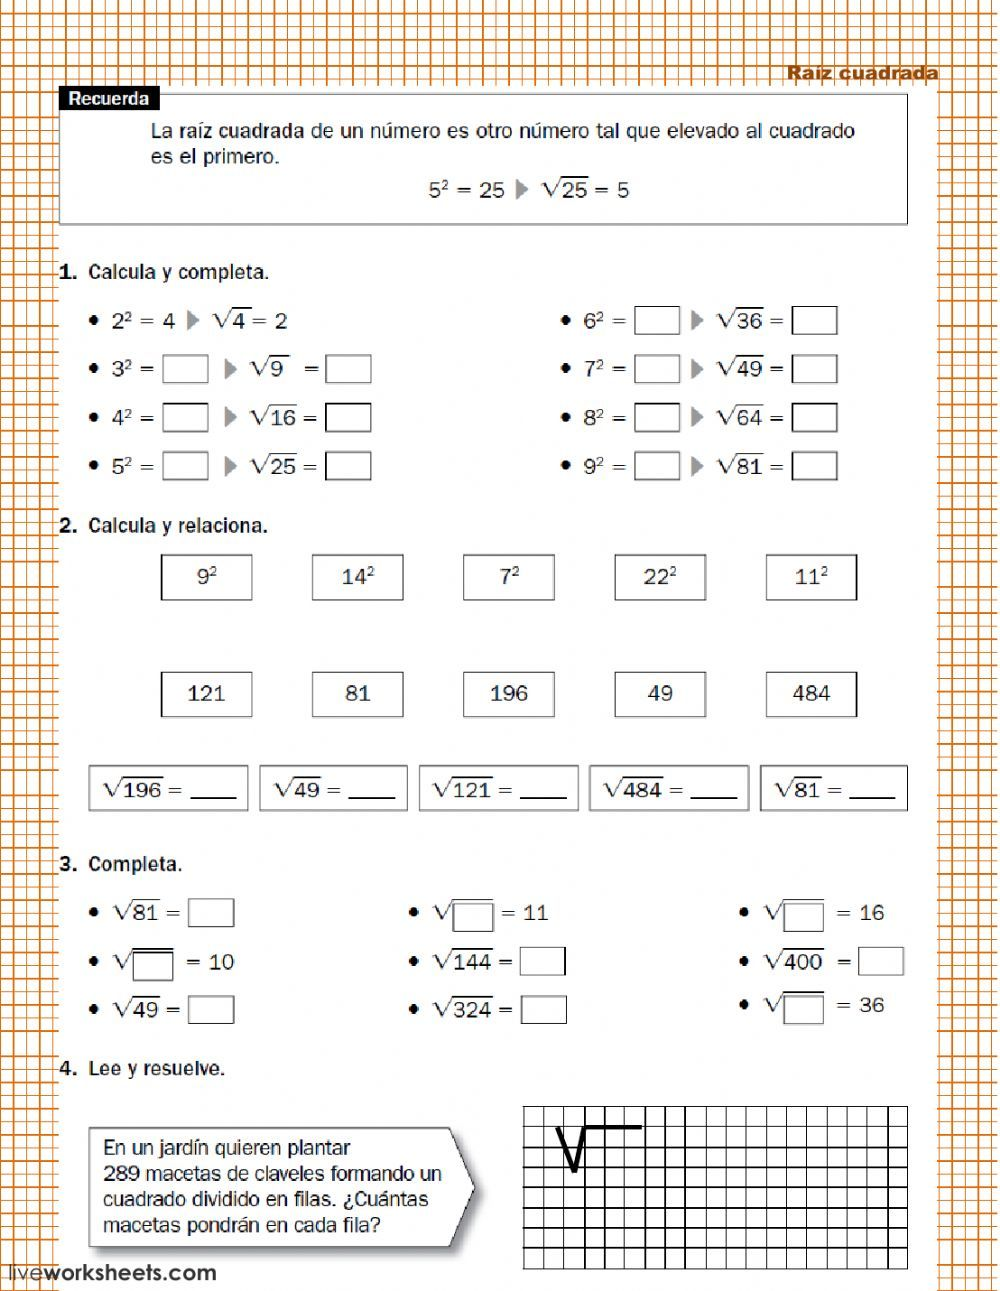 Raiz Cuadrada De Un Numero Raíz Cuadrada Interactive And Downloadable Worksheet You Can Do